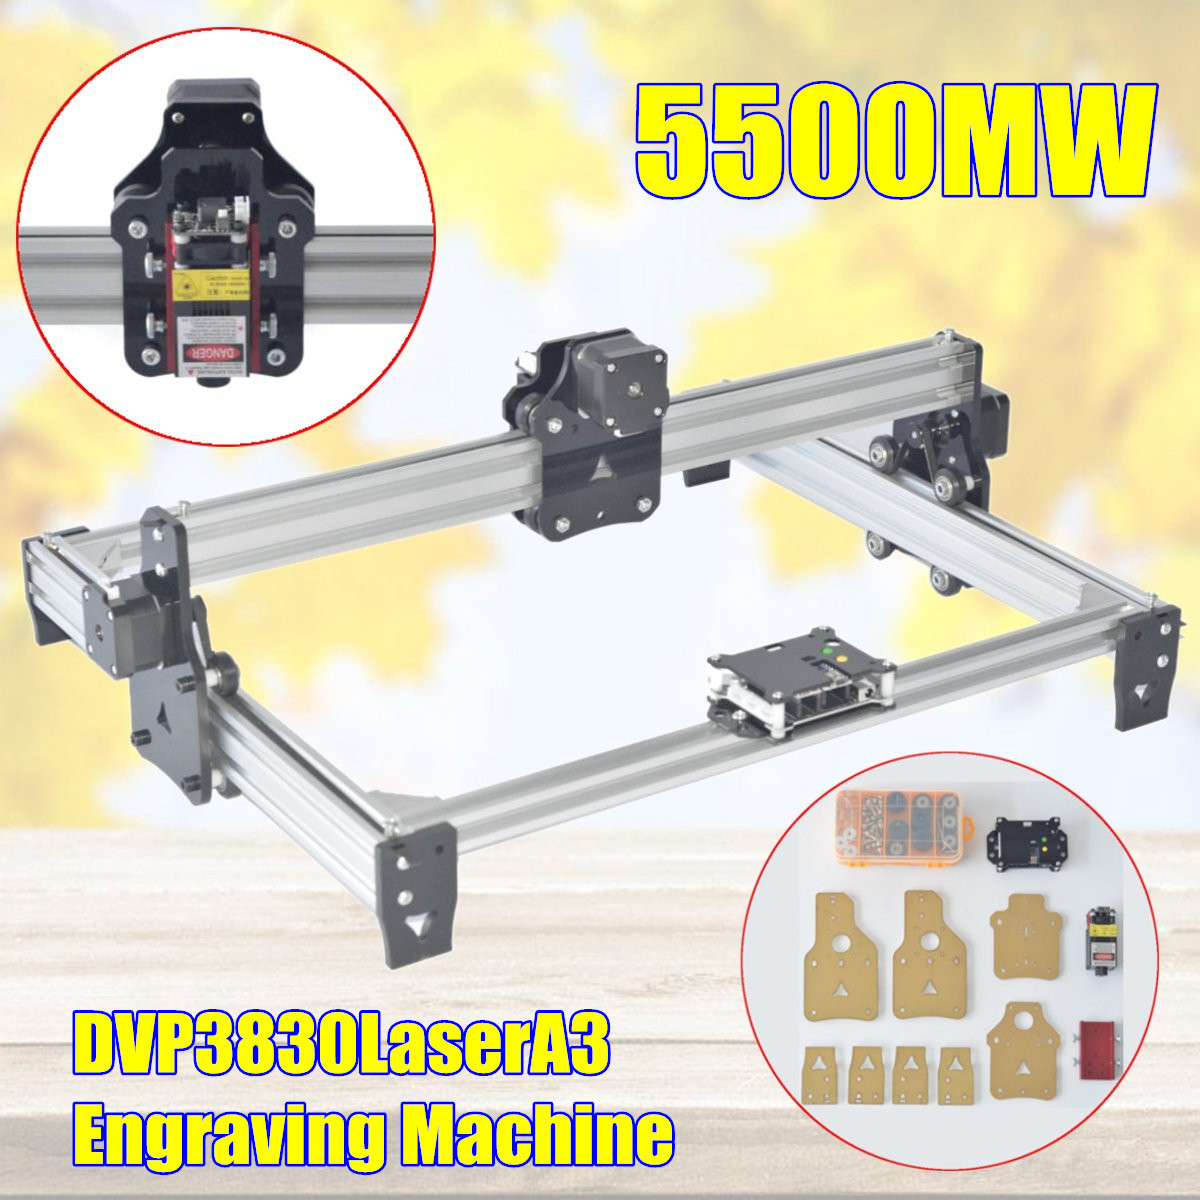 5500mw DVP 3830 Laser A3 Engraving Machine,DIY Laser Engraver Machine,Wood Router,laser cutter,cnc router,Woodworking Machinery freeshipping skkt460 16e igbt